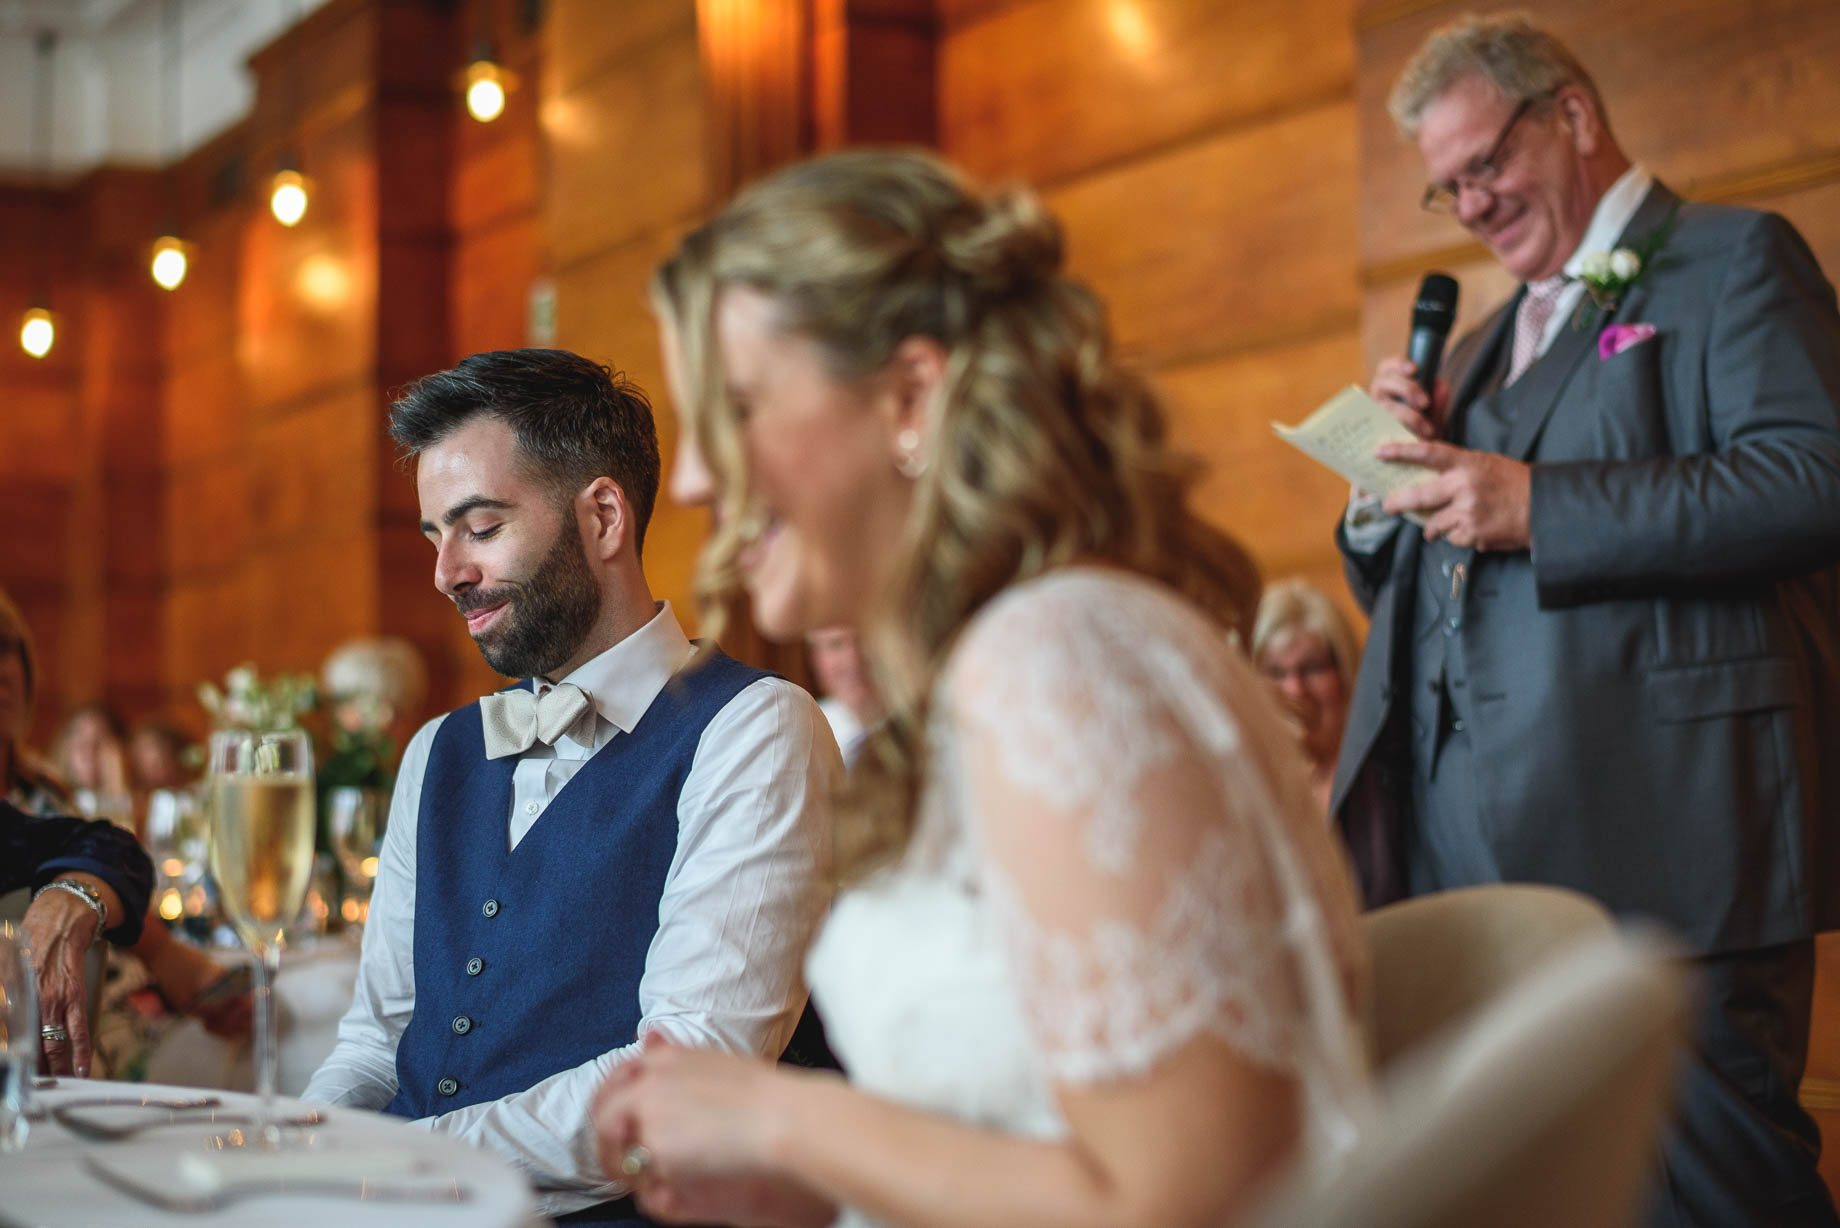 London Wedding Photography - Guy Collier Photography - LJ + Russell (106 of 155)